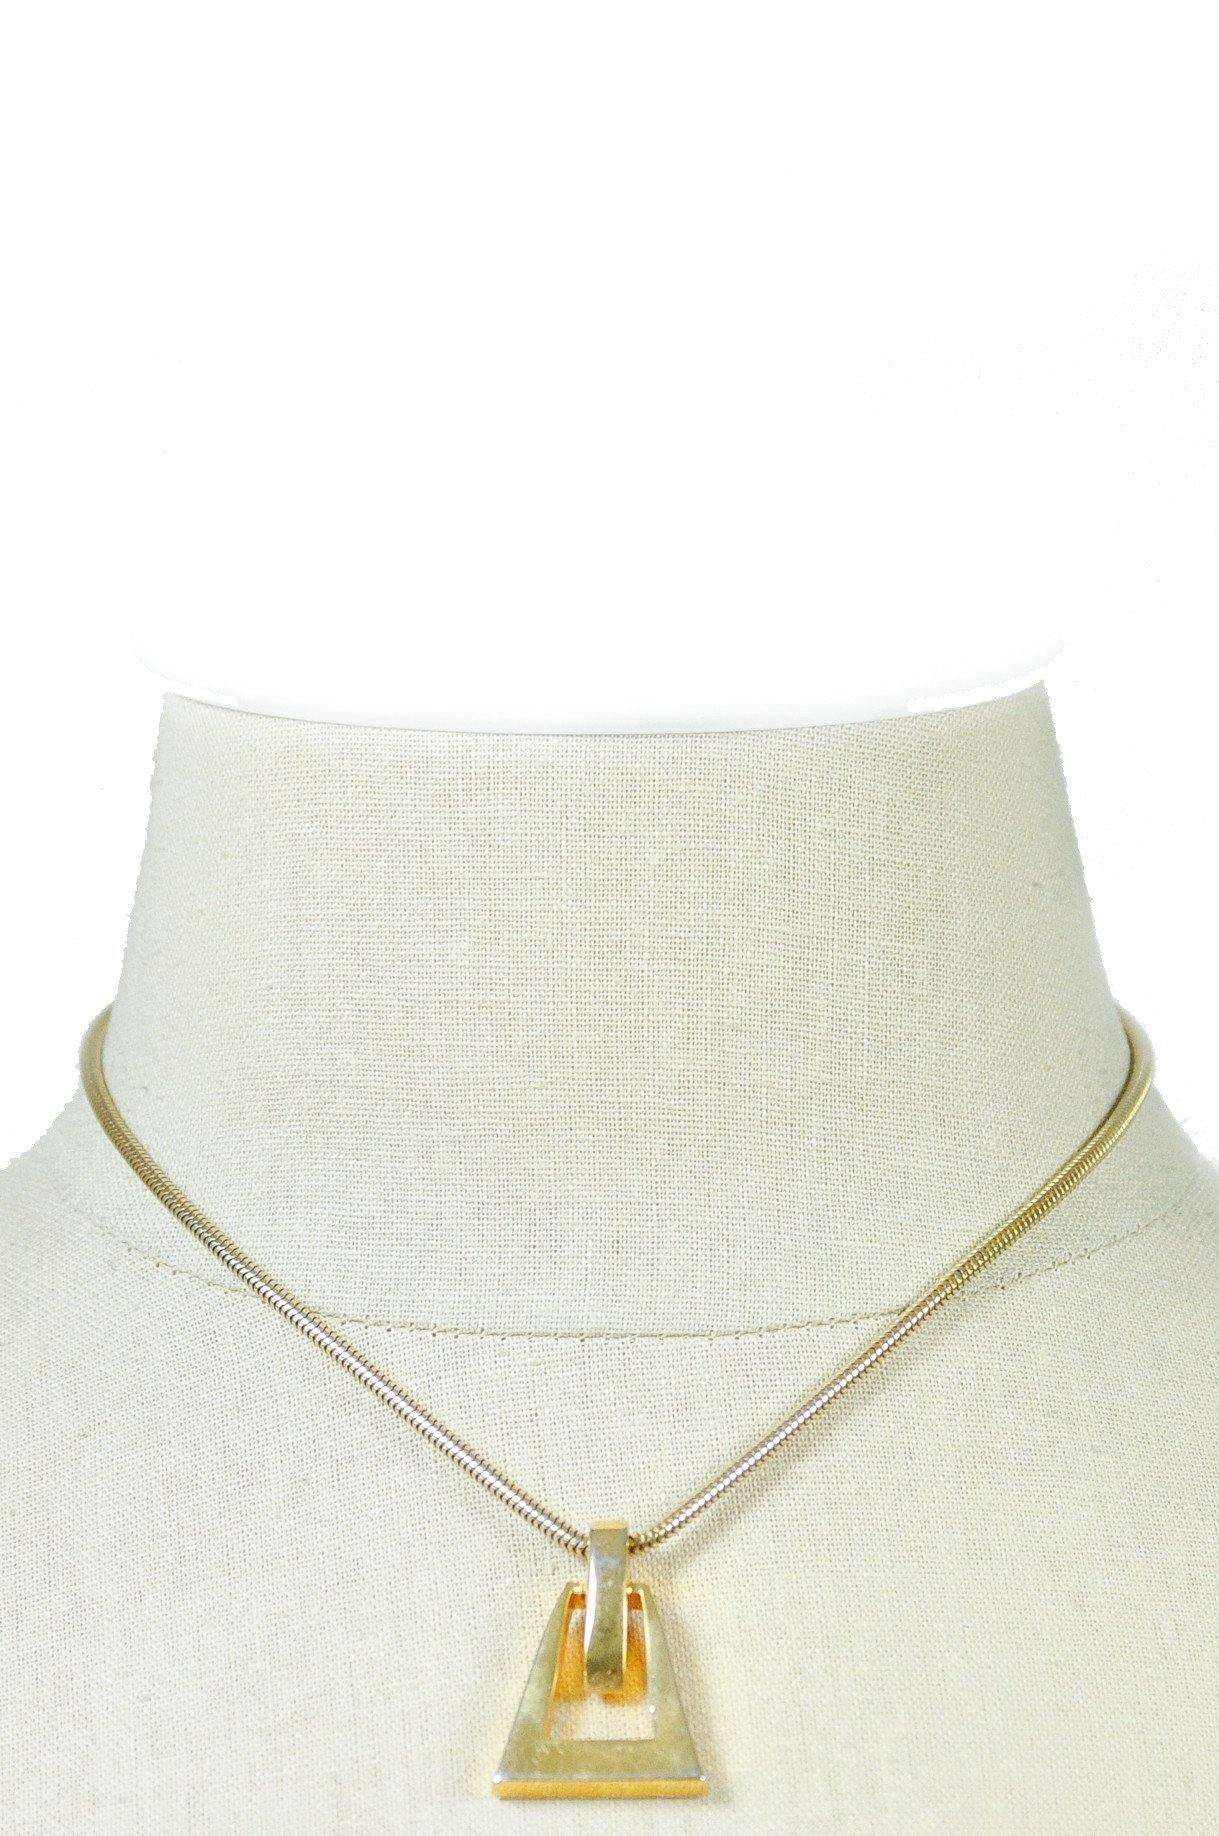 80's__Vintage__Geometric Pendant Necklace